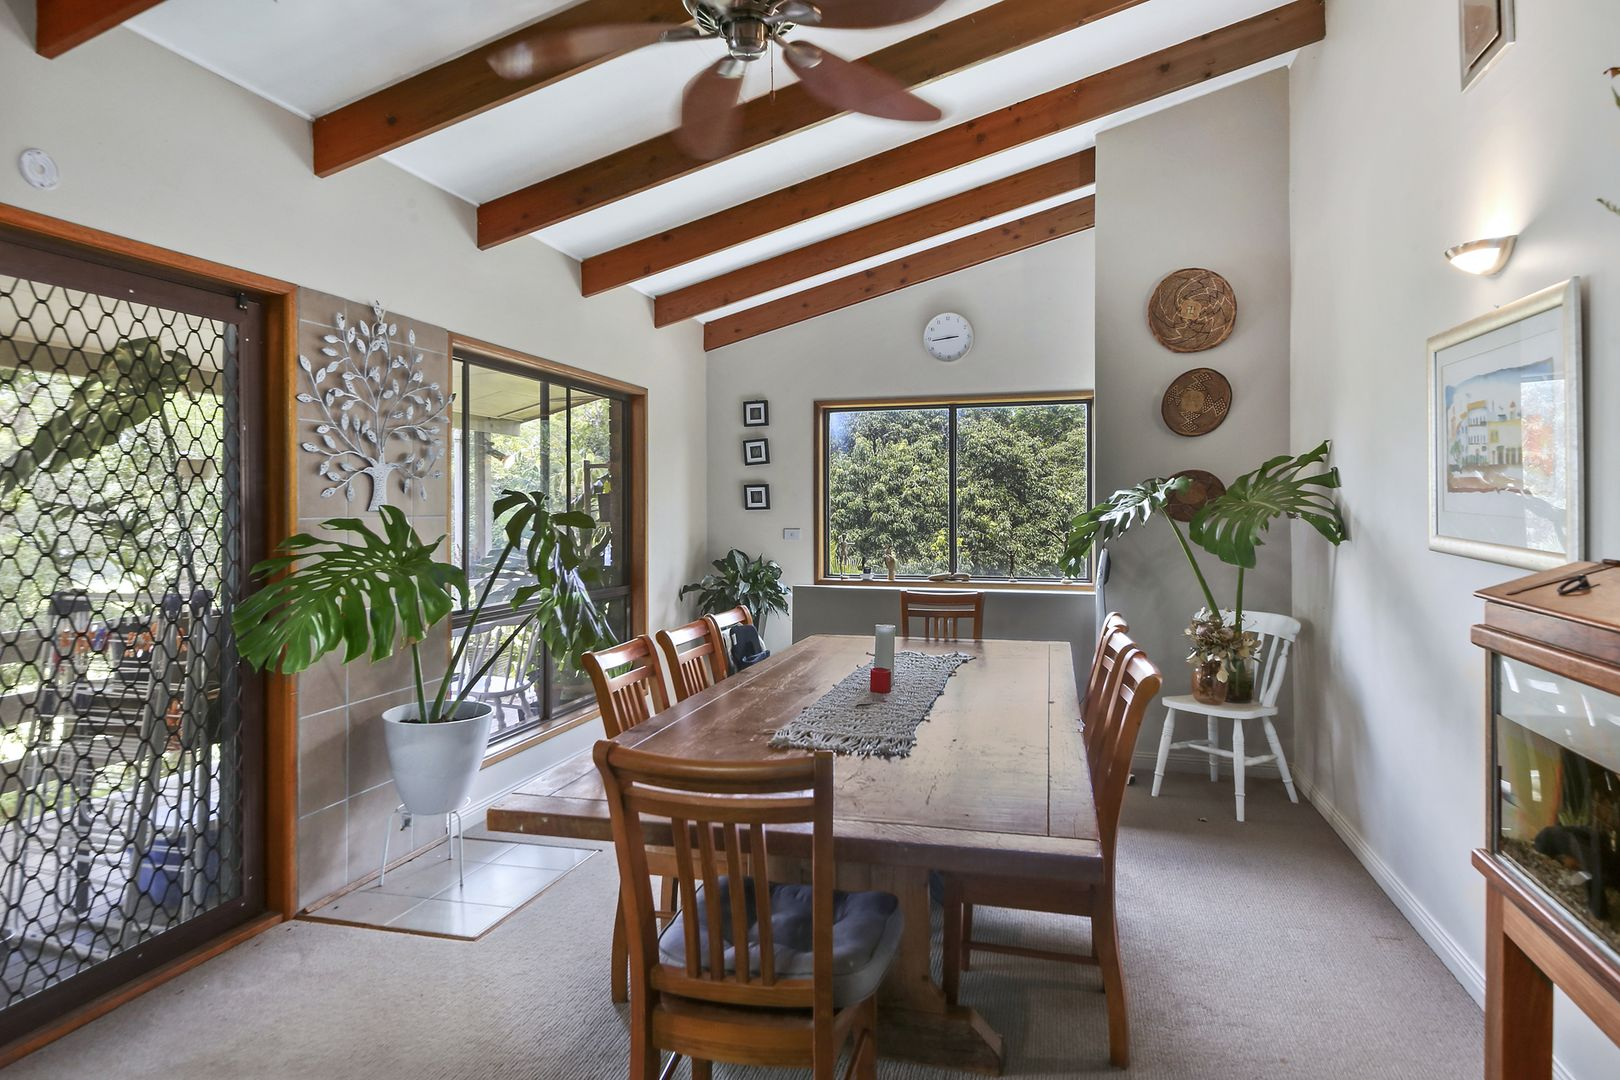 441 Glenview Rd, Glenview QLD 4553, Image 1